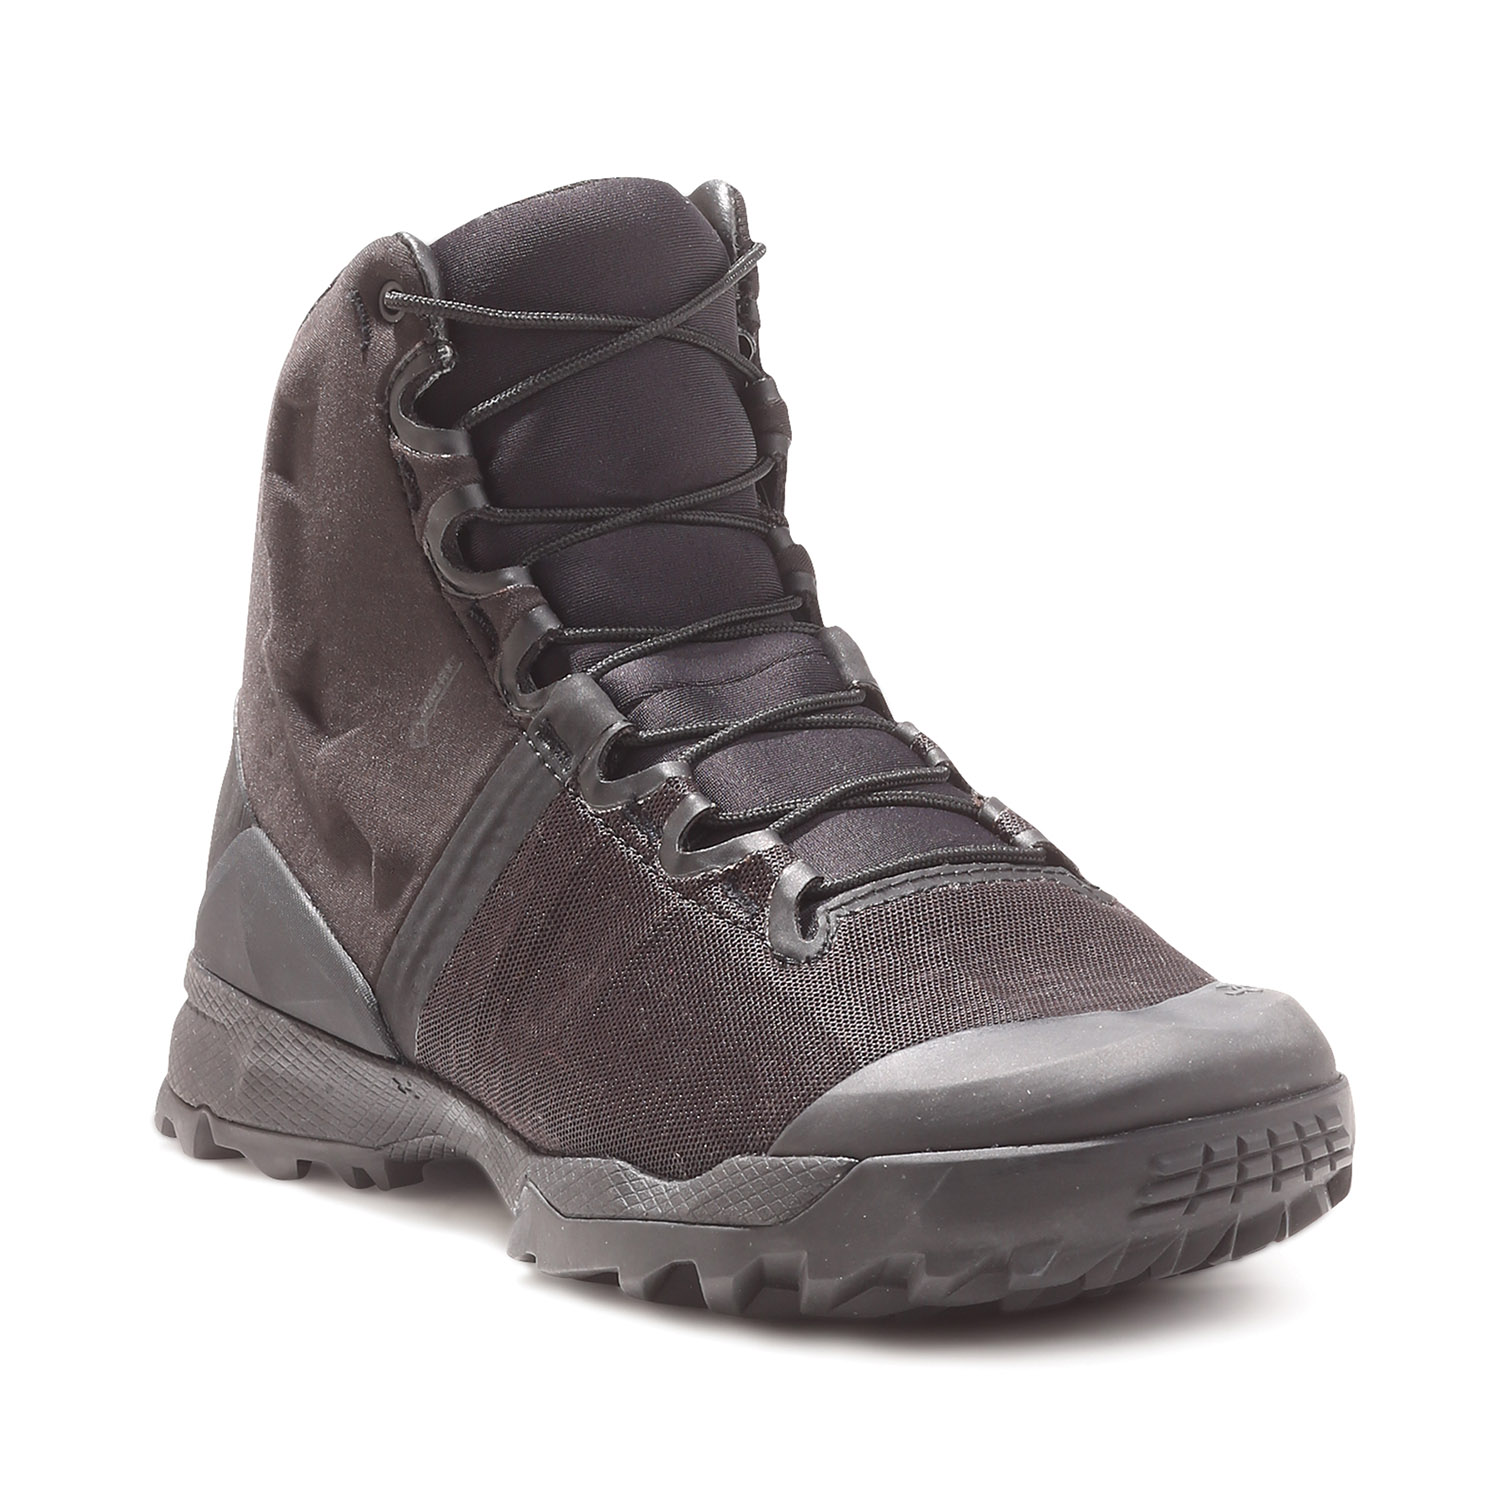 Under armour 7 infil gtx waterproof boot falaconquin